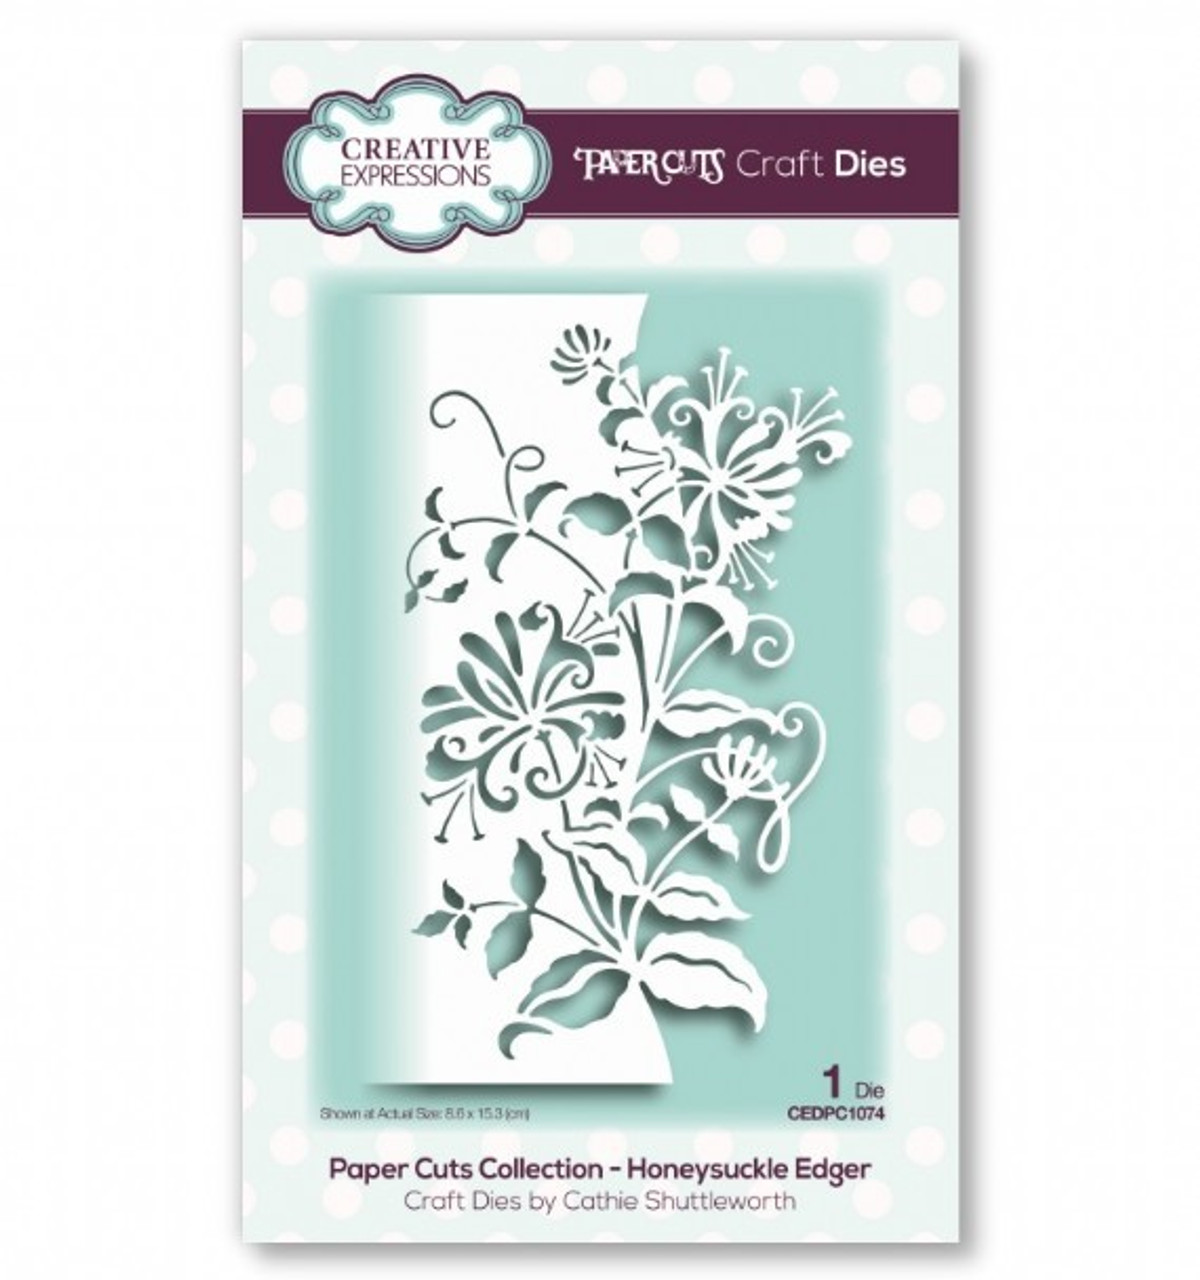 Creative Expressions Paper Cuts Collection - Honeysuckle Edger Craft Die CEDPC1074